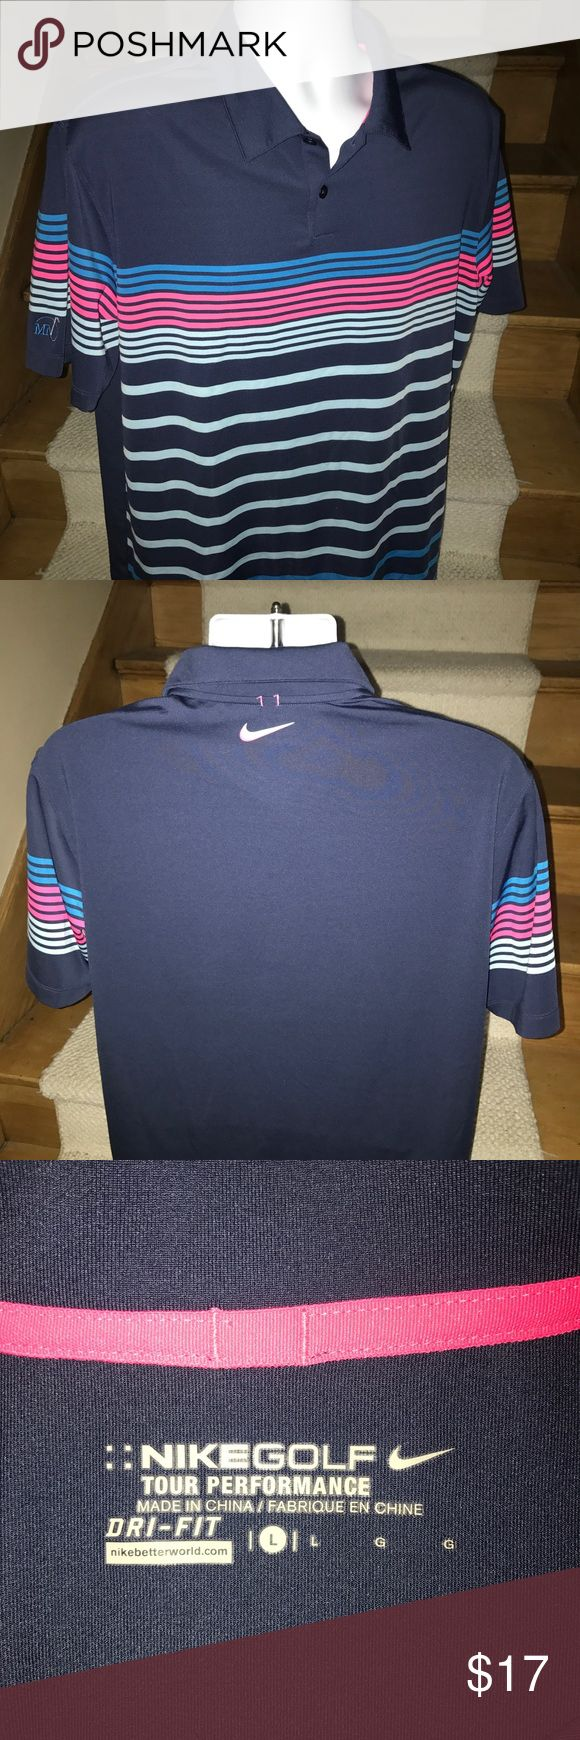 Nike Golf Tour Performance like new polo shirt - L Stunning men's Nike Golf Tour Performance moisture wicking casual golf polo shirt that is sized large.  Perfect like new condition.  Nike Swoosh logo on top of the back - small golf resort logo on sleeve.  Incredible style and quality. Nike Shirts Polos